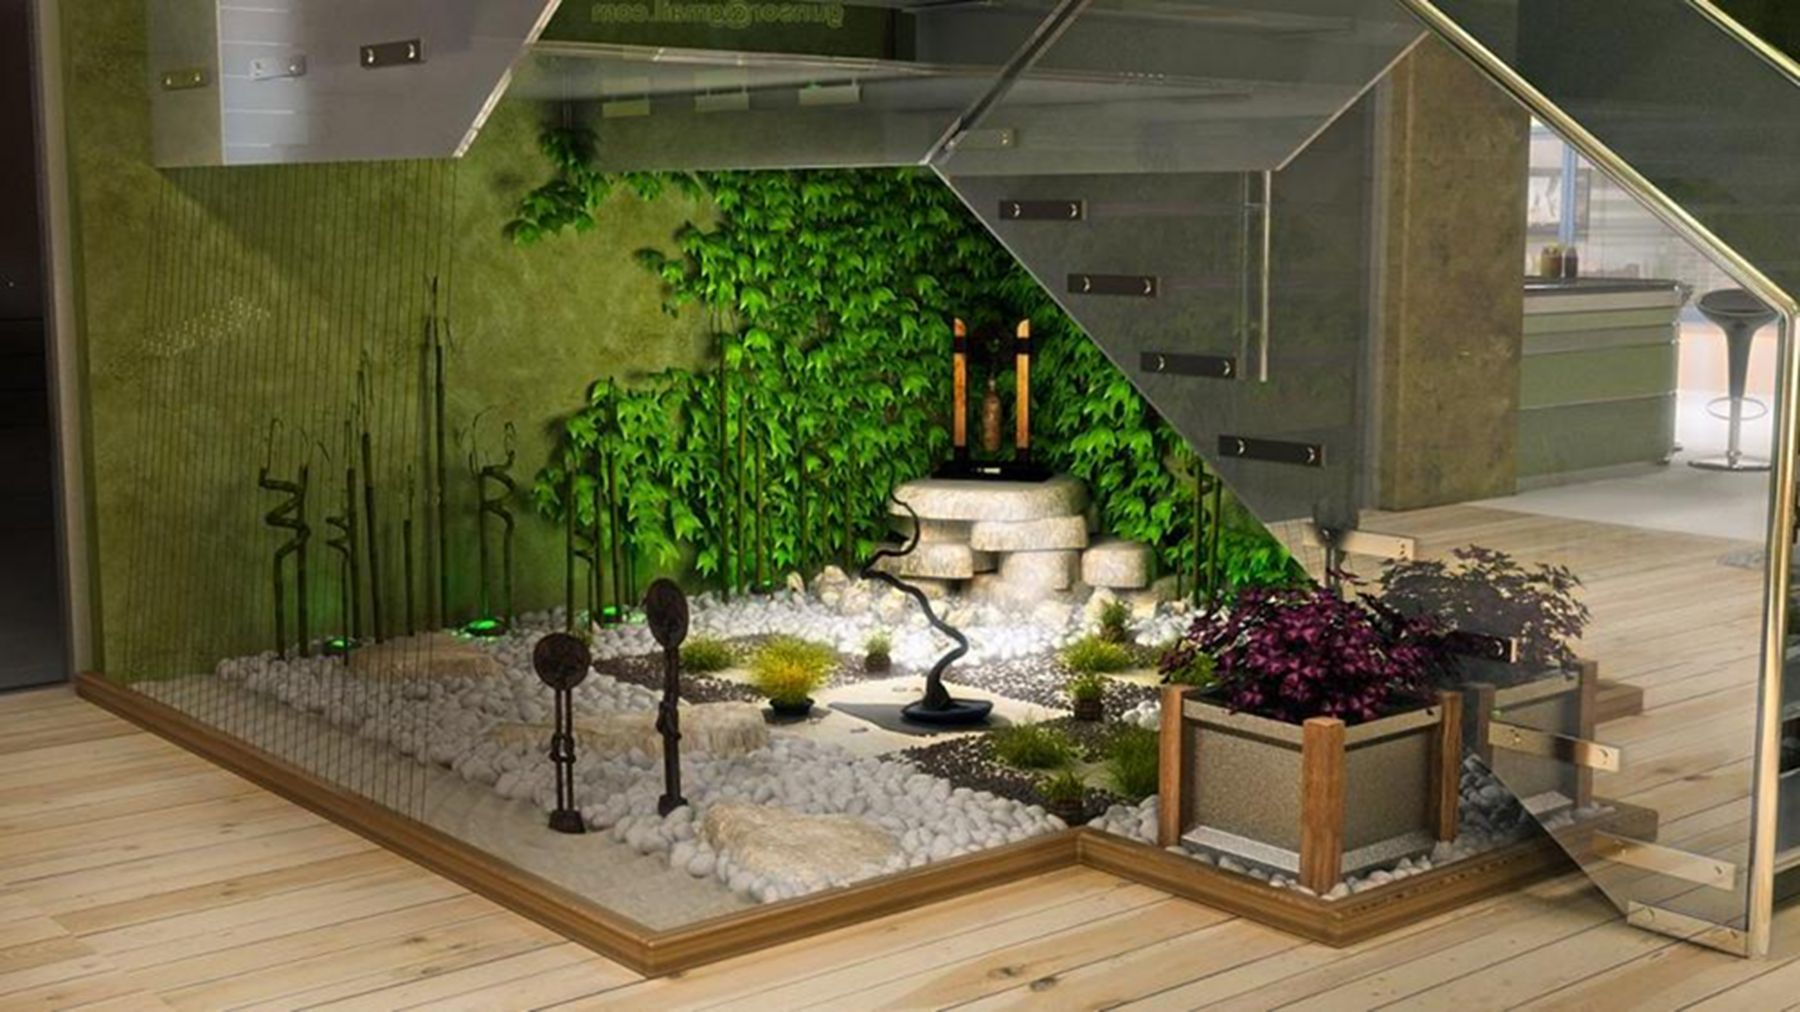 15 Beautiful Garden Design Ideas Indoors To Refresh Your Home